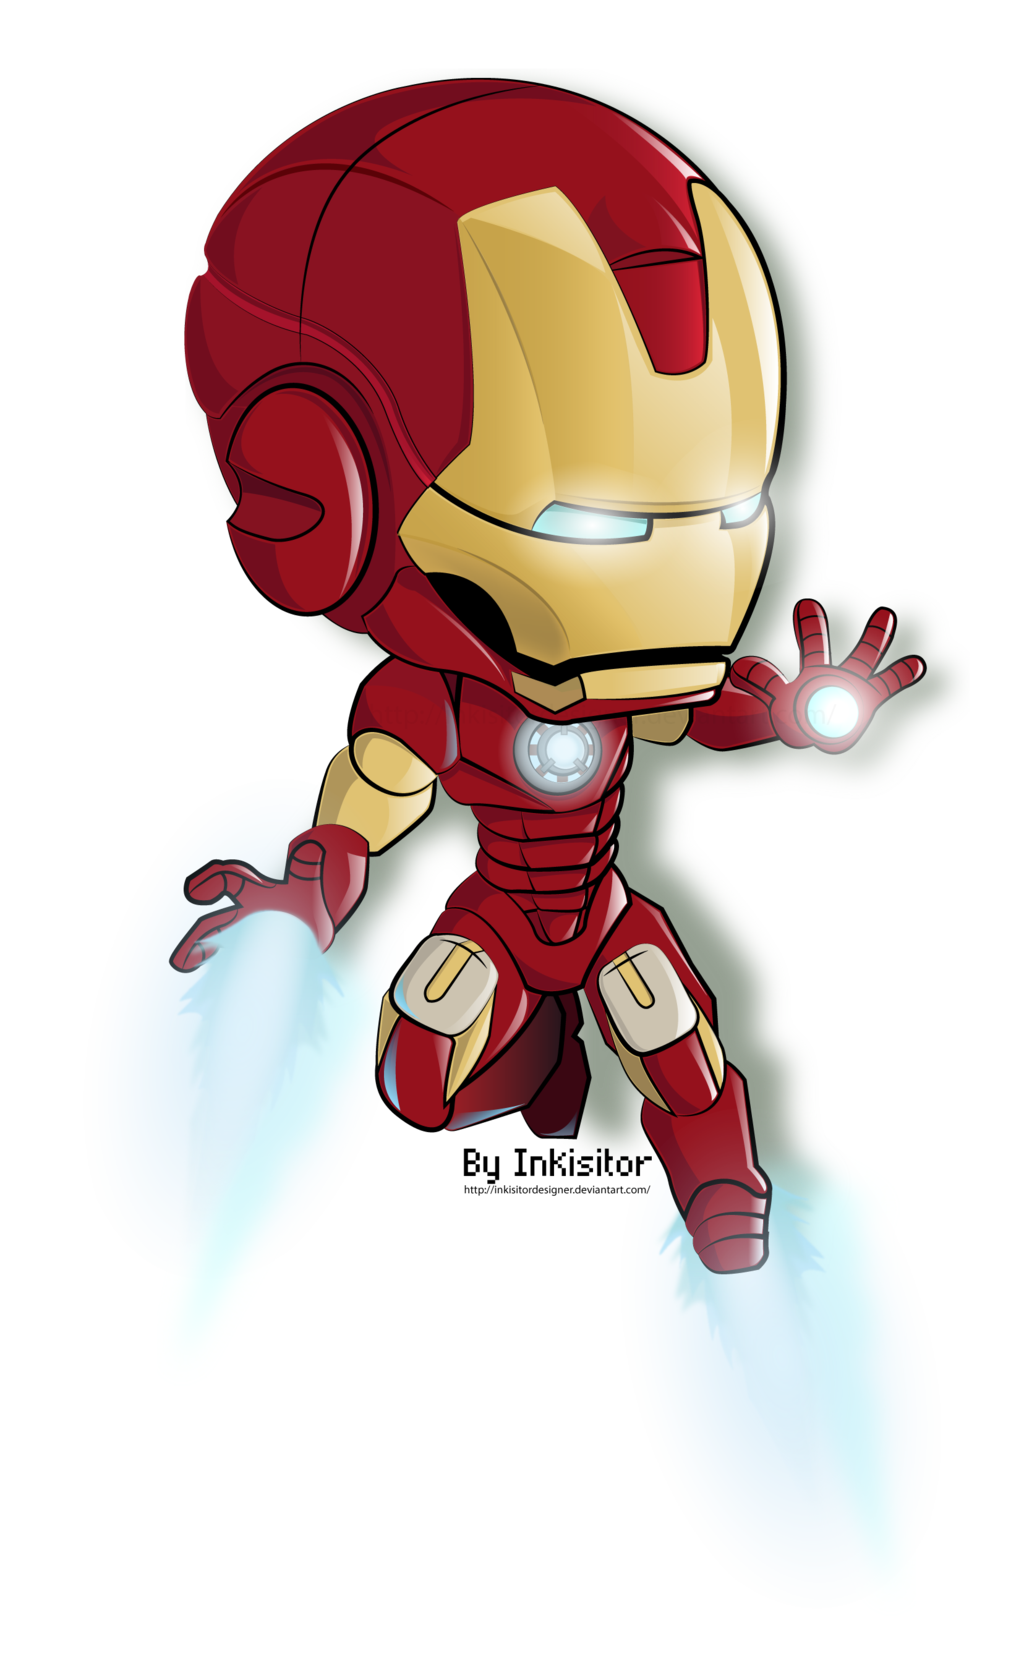 Ironman by on